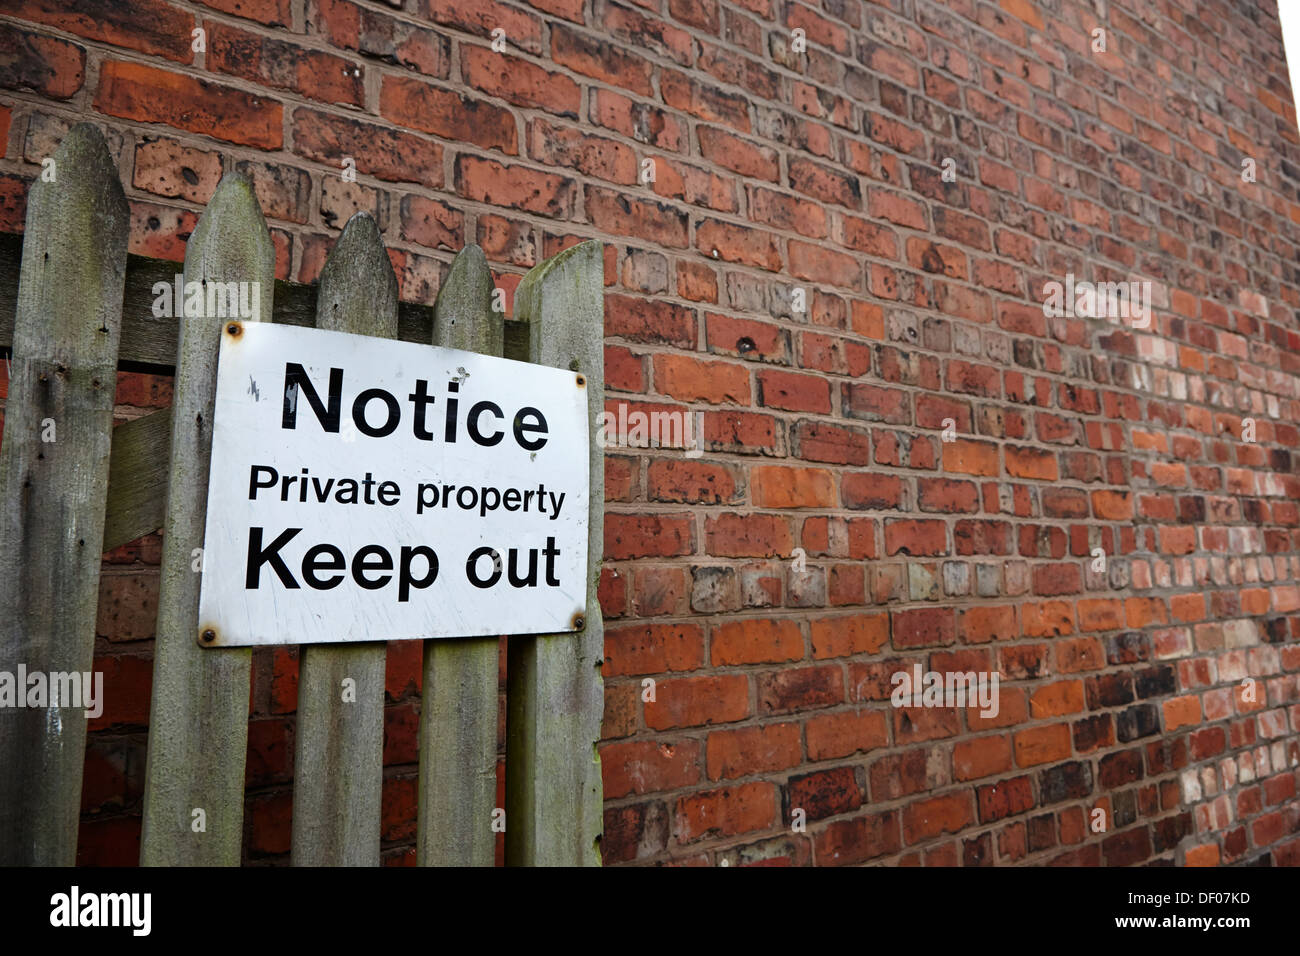 notice sign for private property keep out england uk - Stock Image